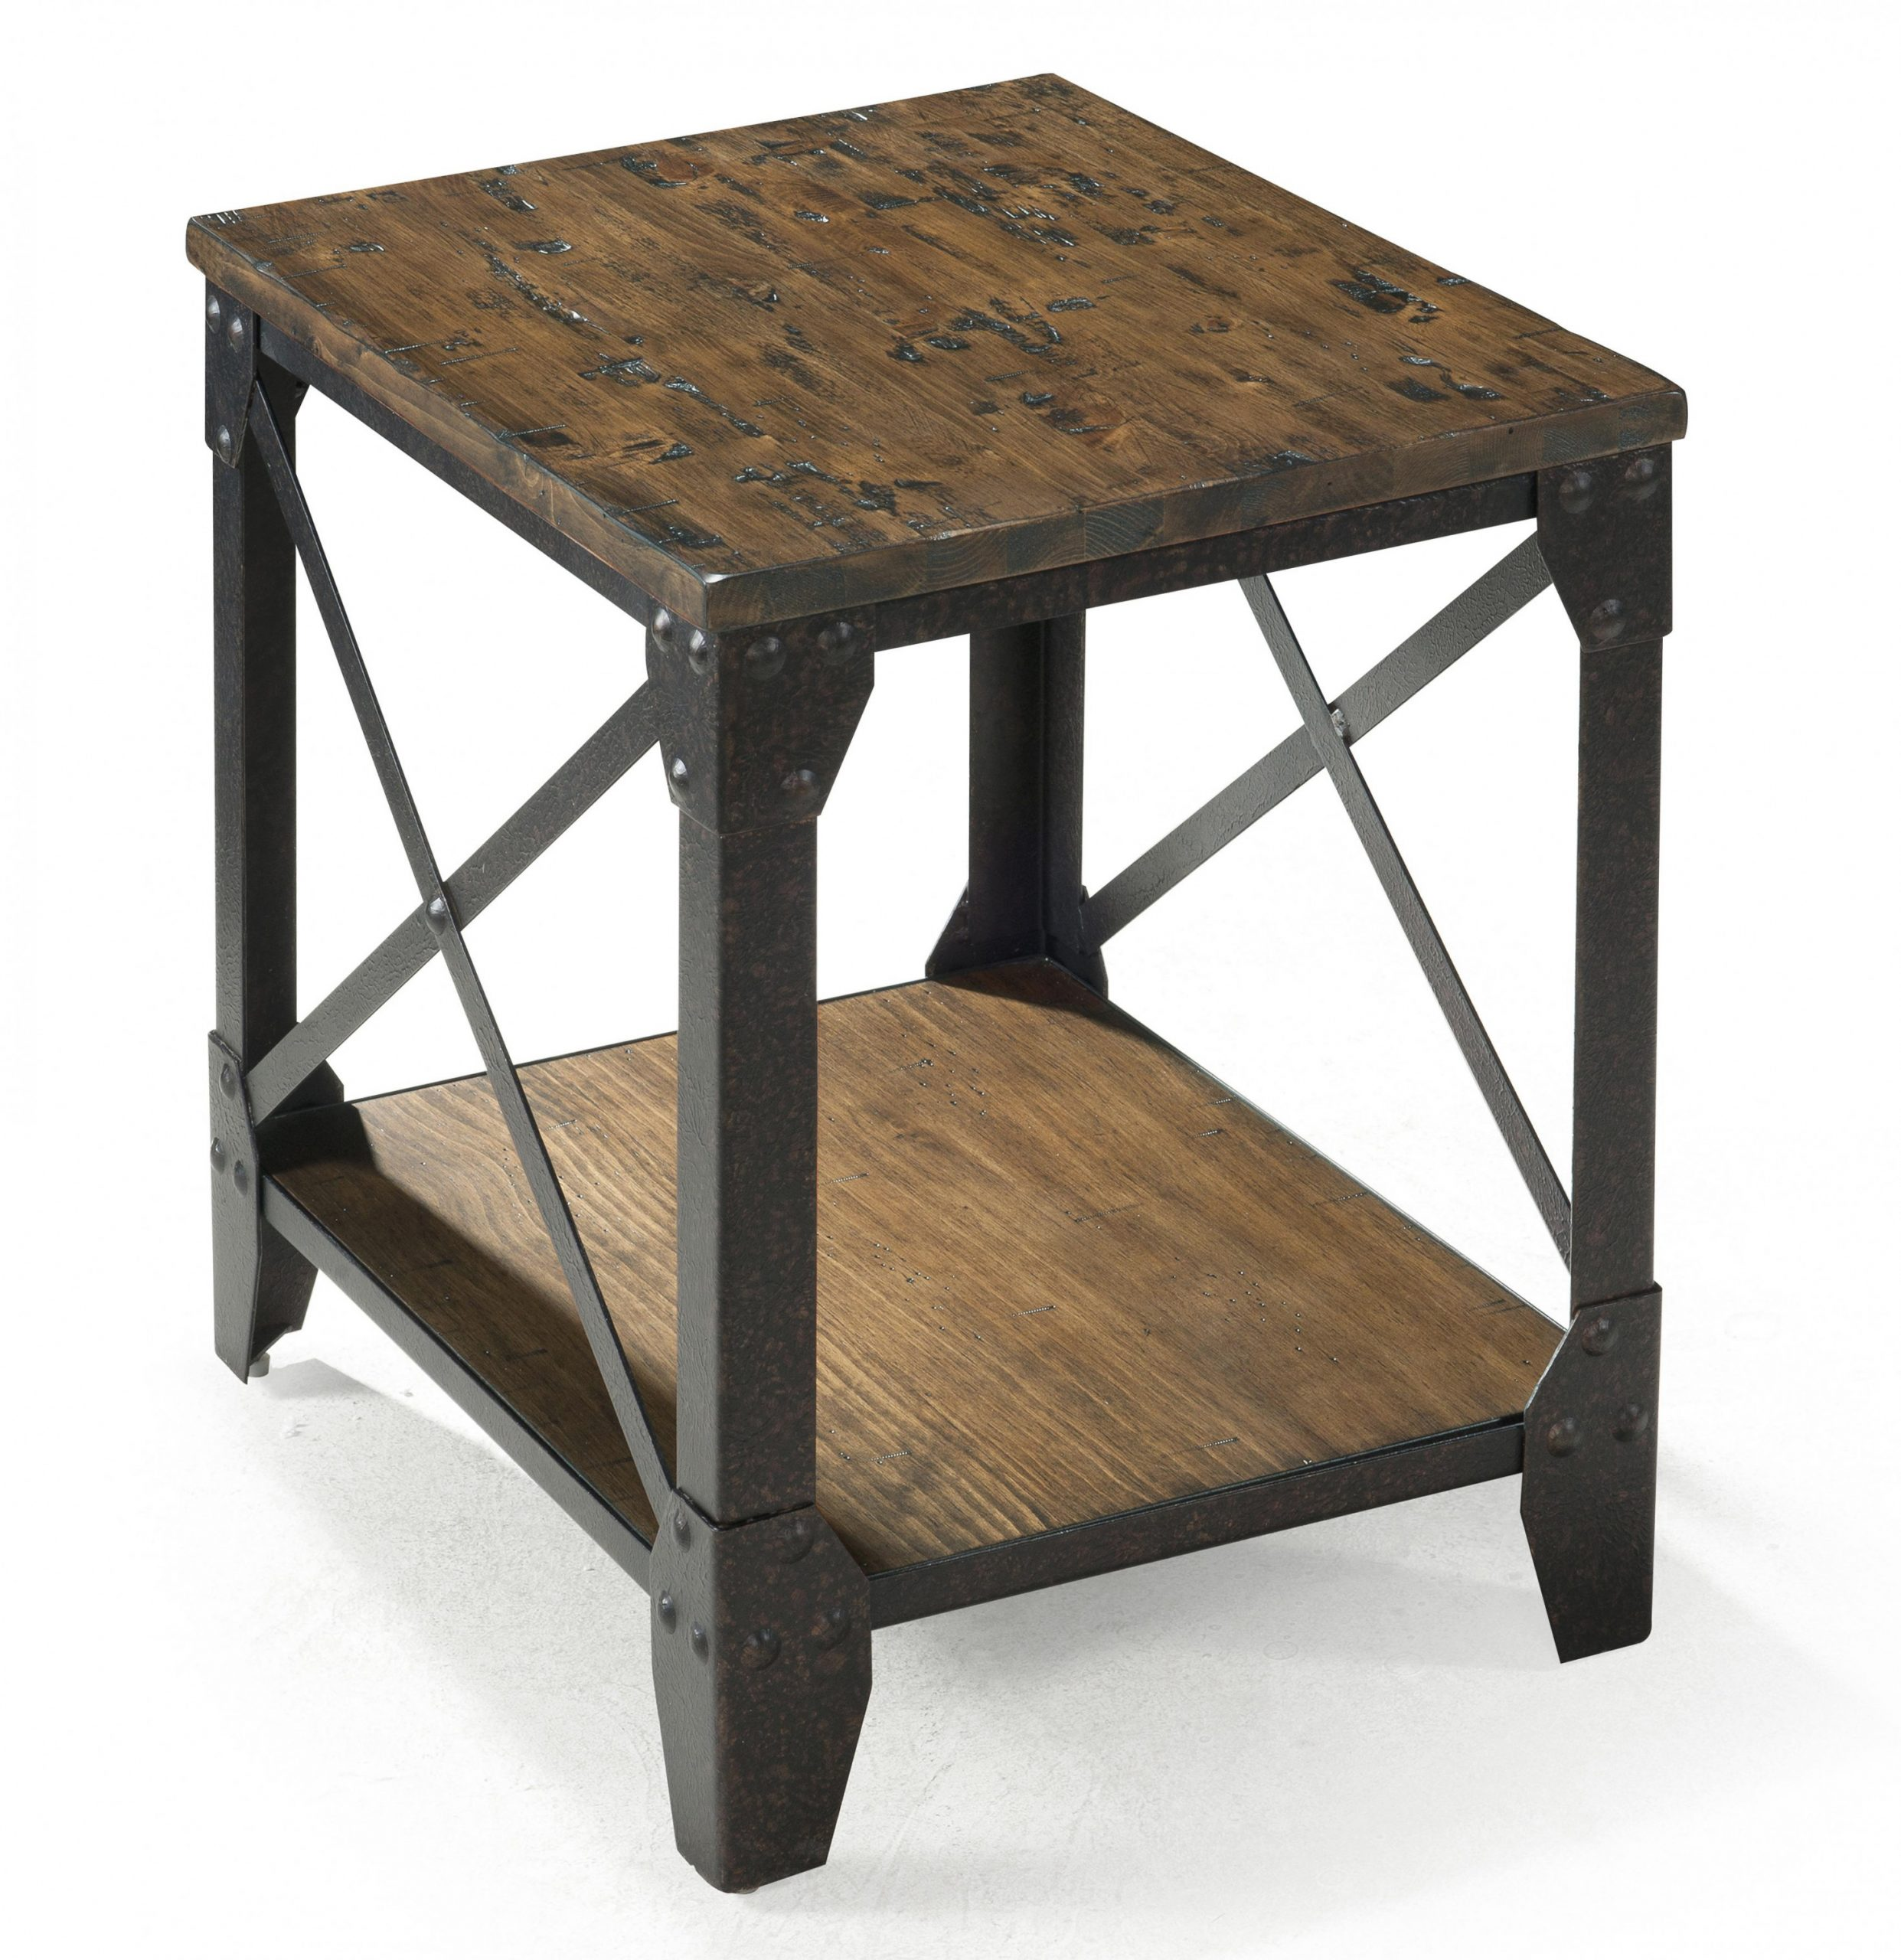 Pinebrook Rectangular Smaller End Table inside 9+ Awesome Inspiration For Small End Tables Living Room